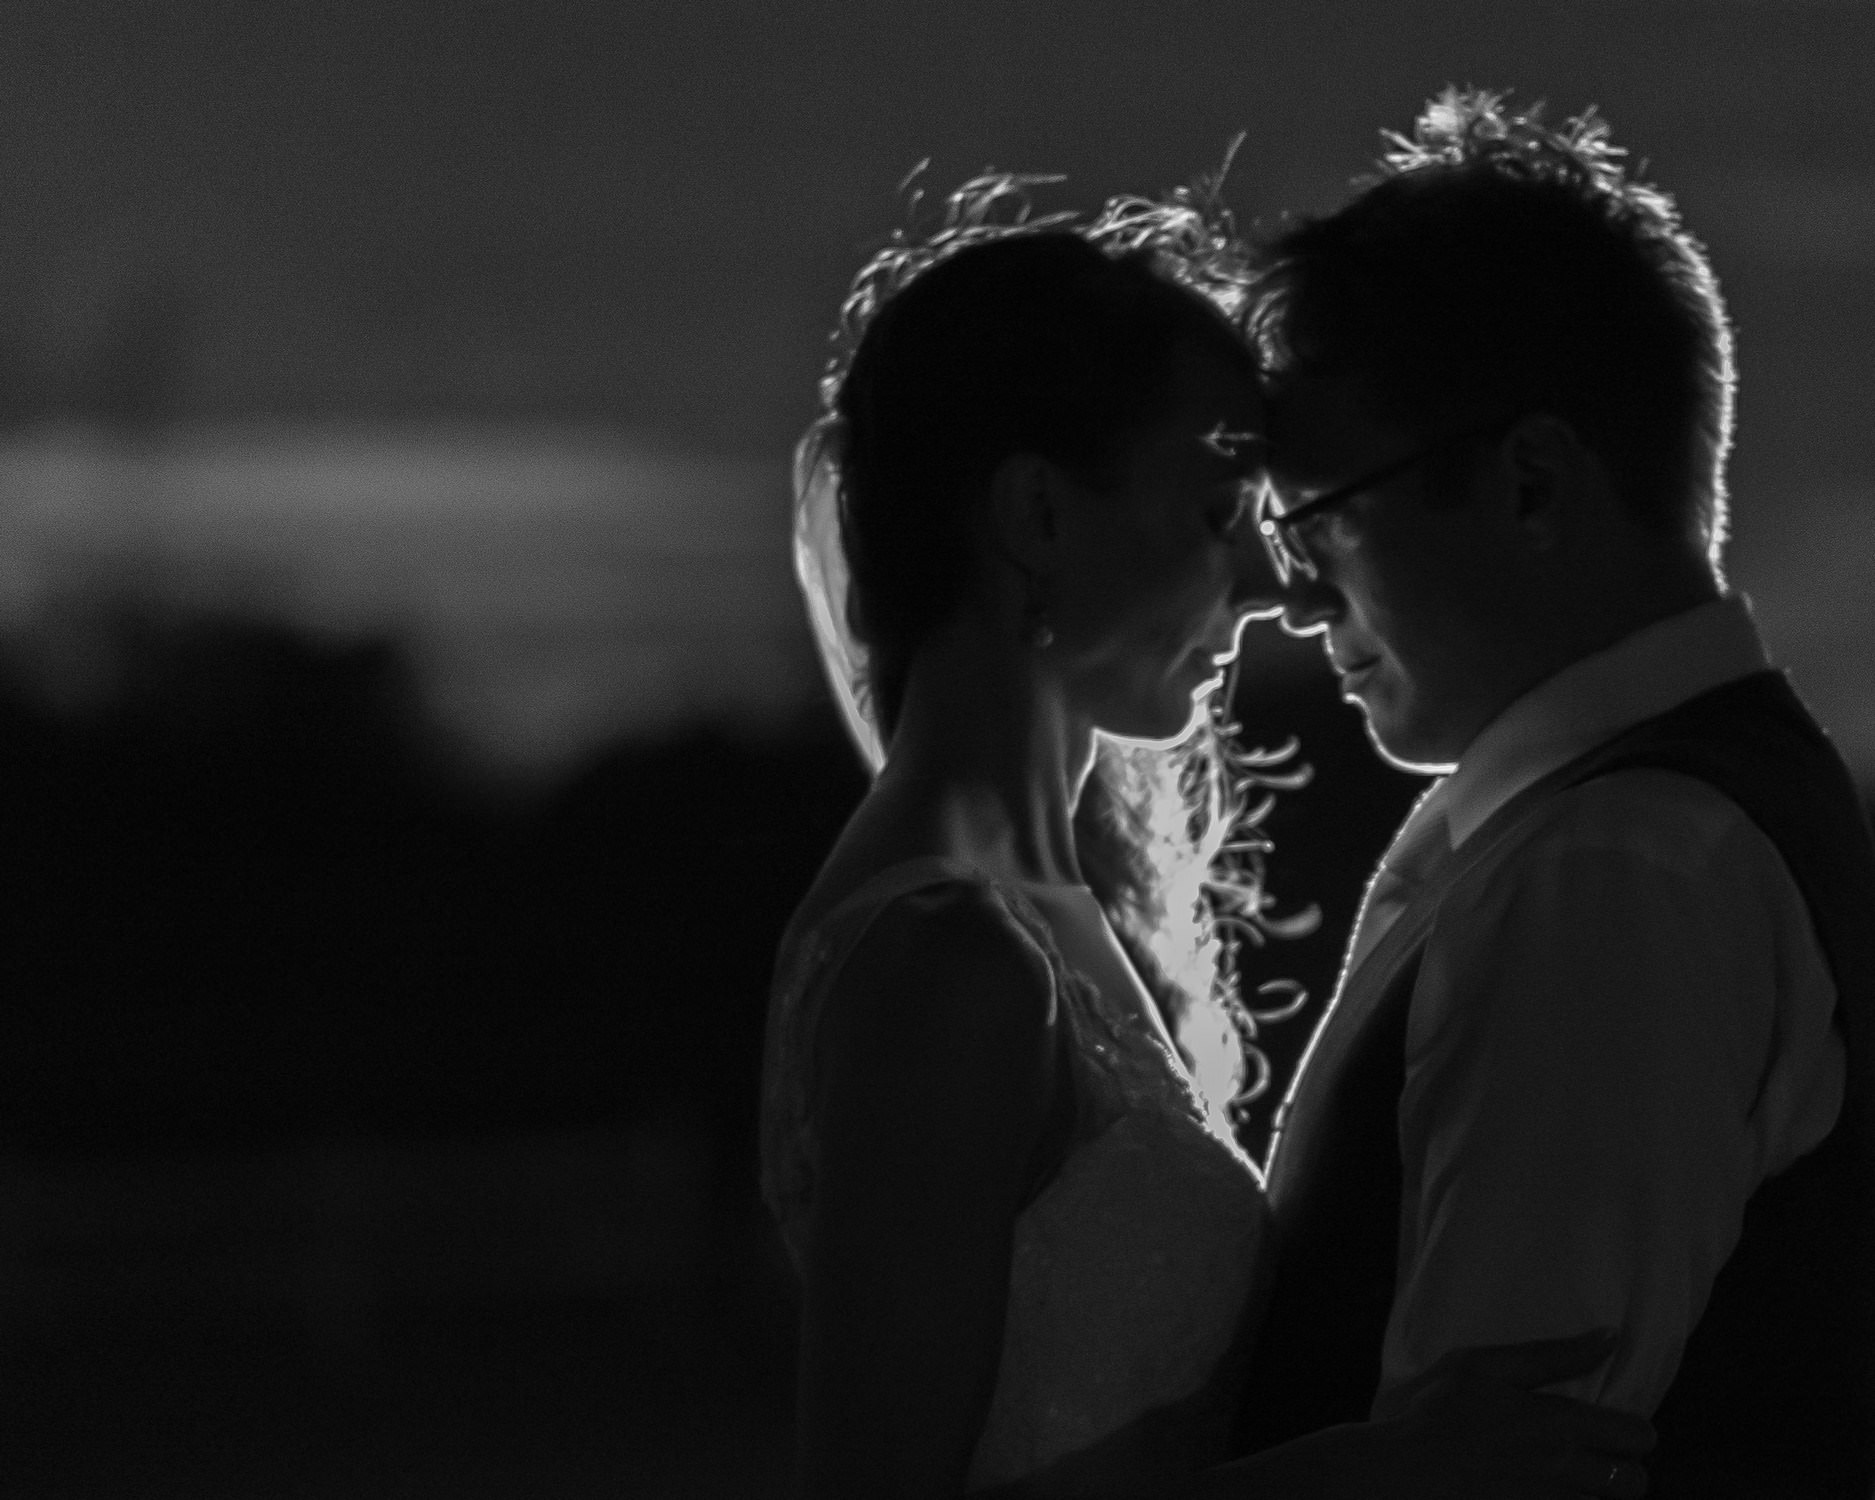 Bride And Groom In Heart-Shaped Backlight